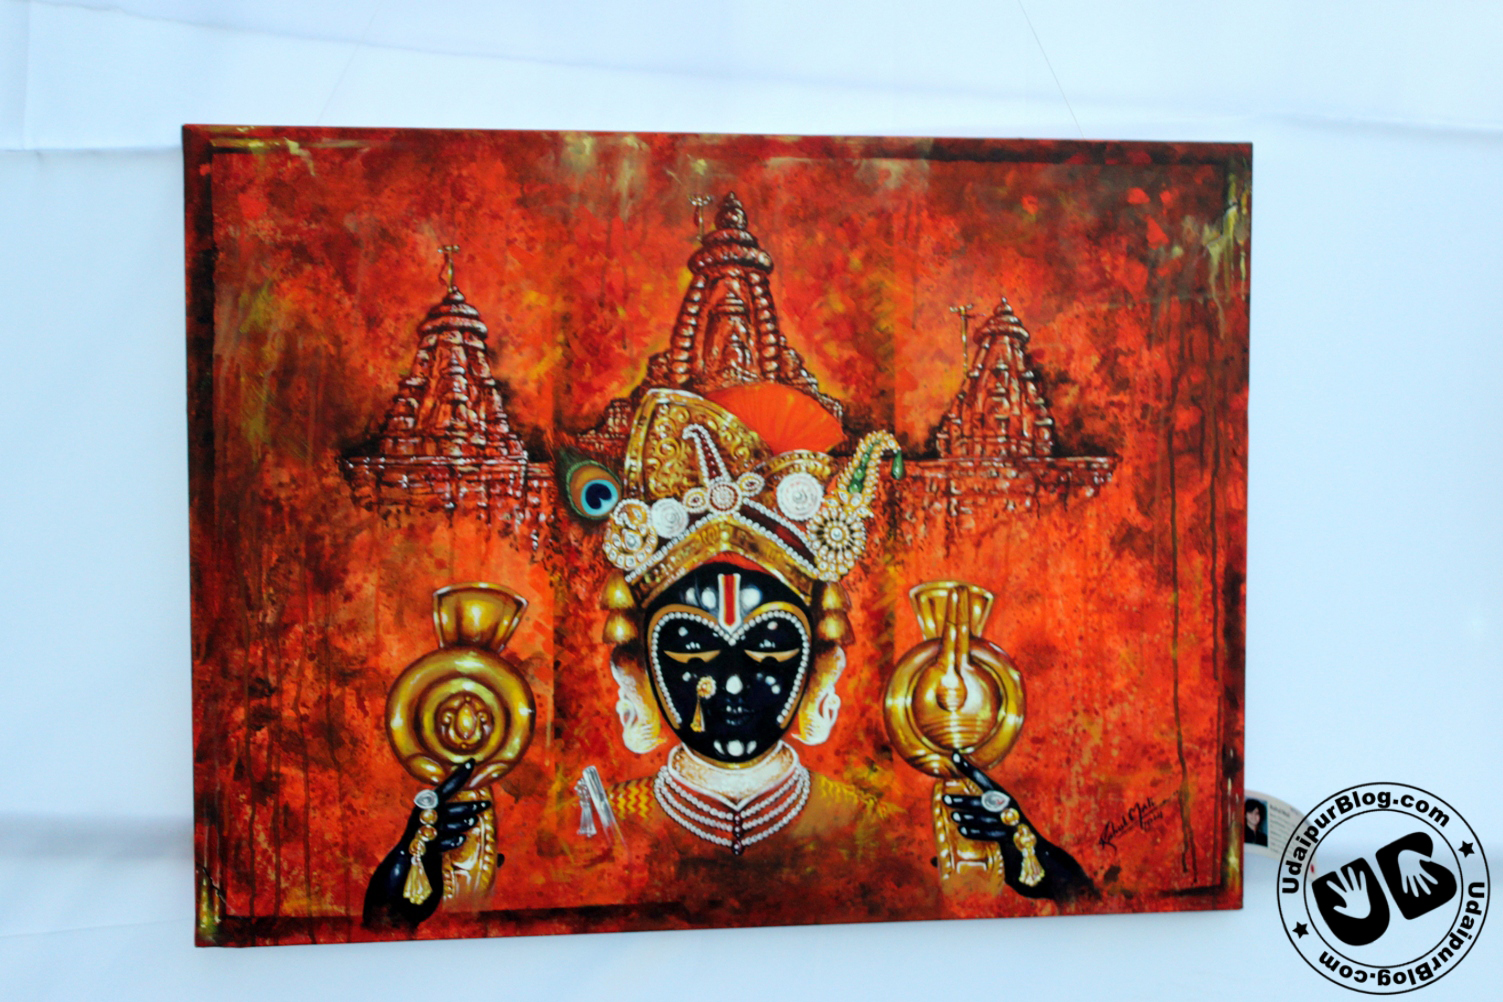 [Photos] Painting Exhibition at Fatehsagar Paal